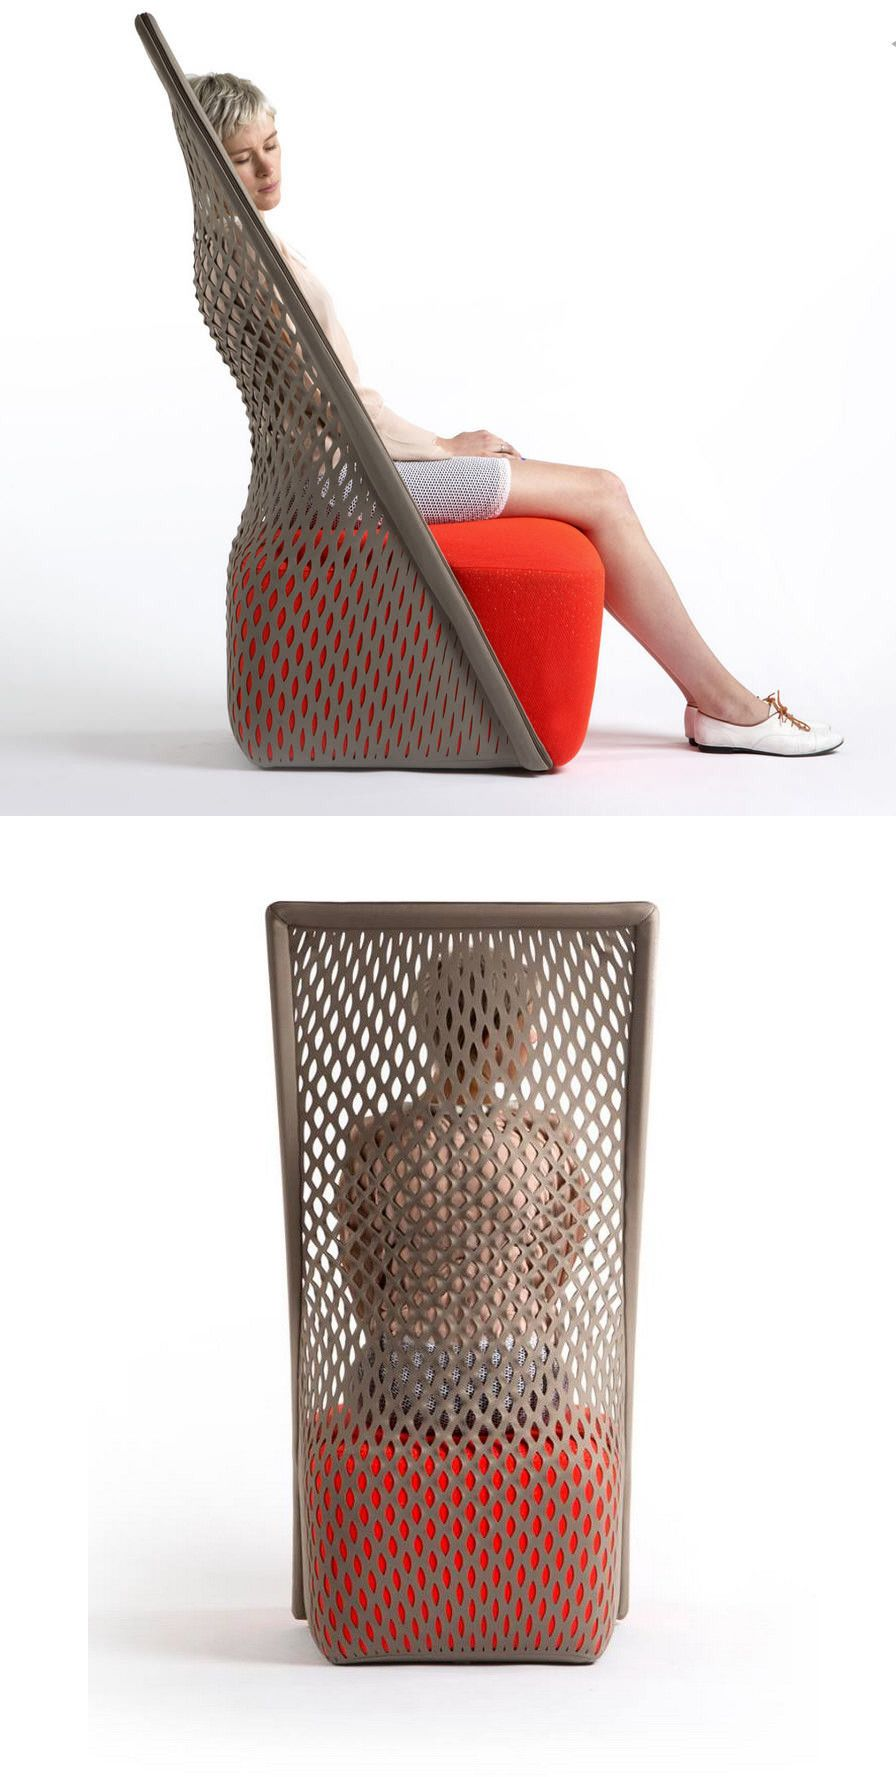 Hammock Chair Fusion By Benjamin Hubert: Cradle. By Combining The  Functionality Of A